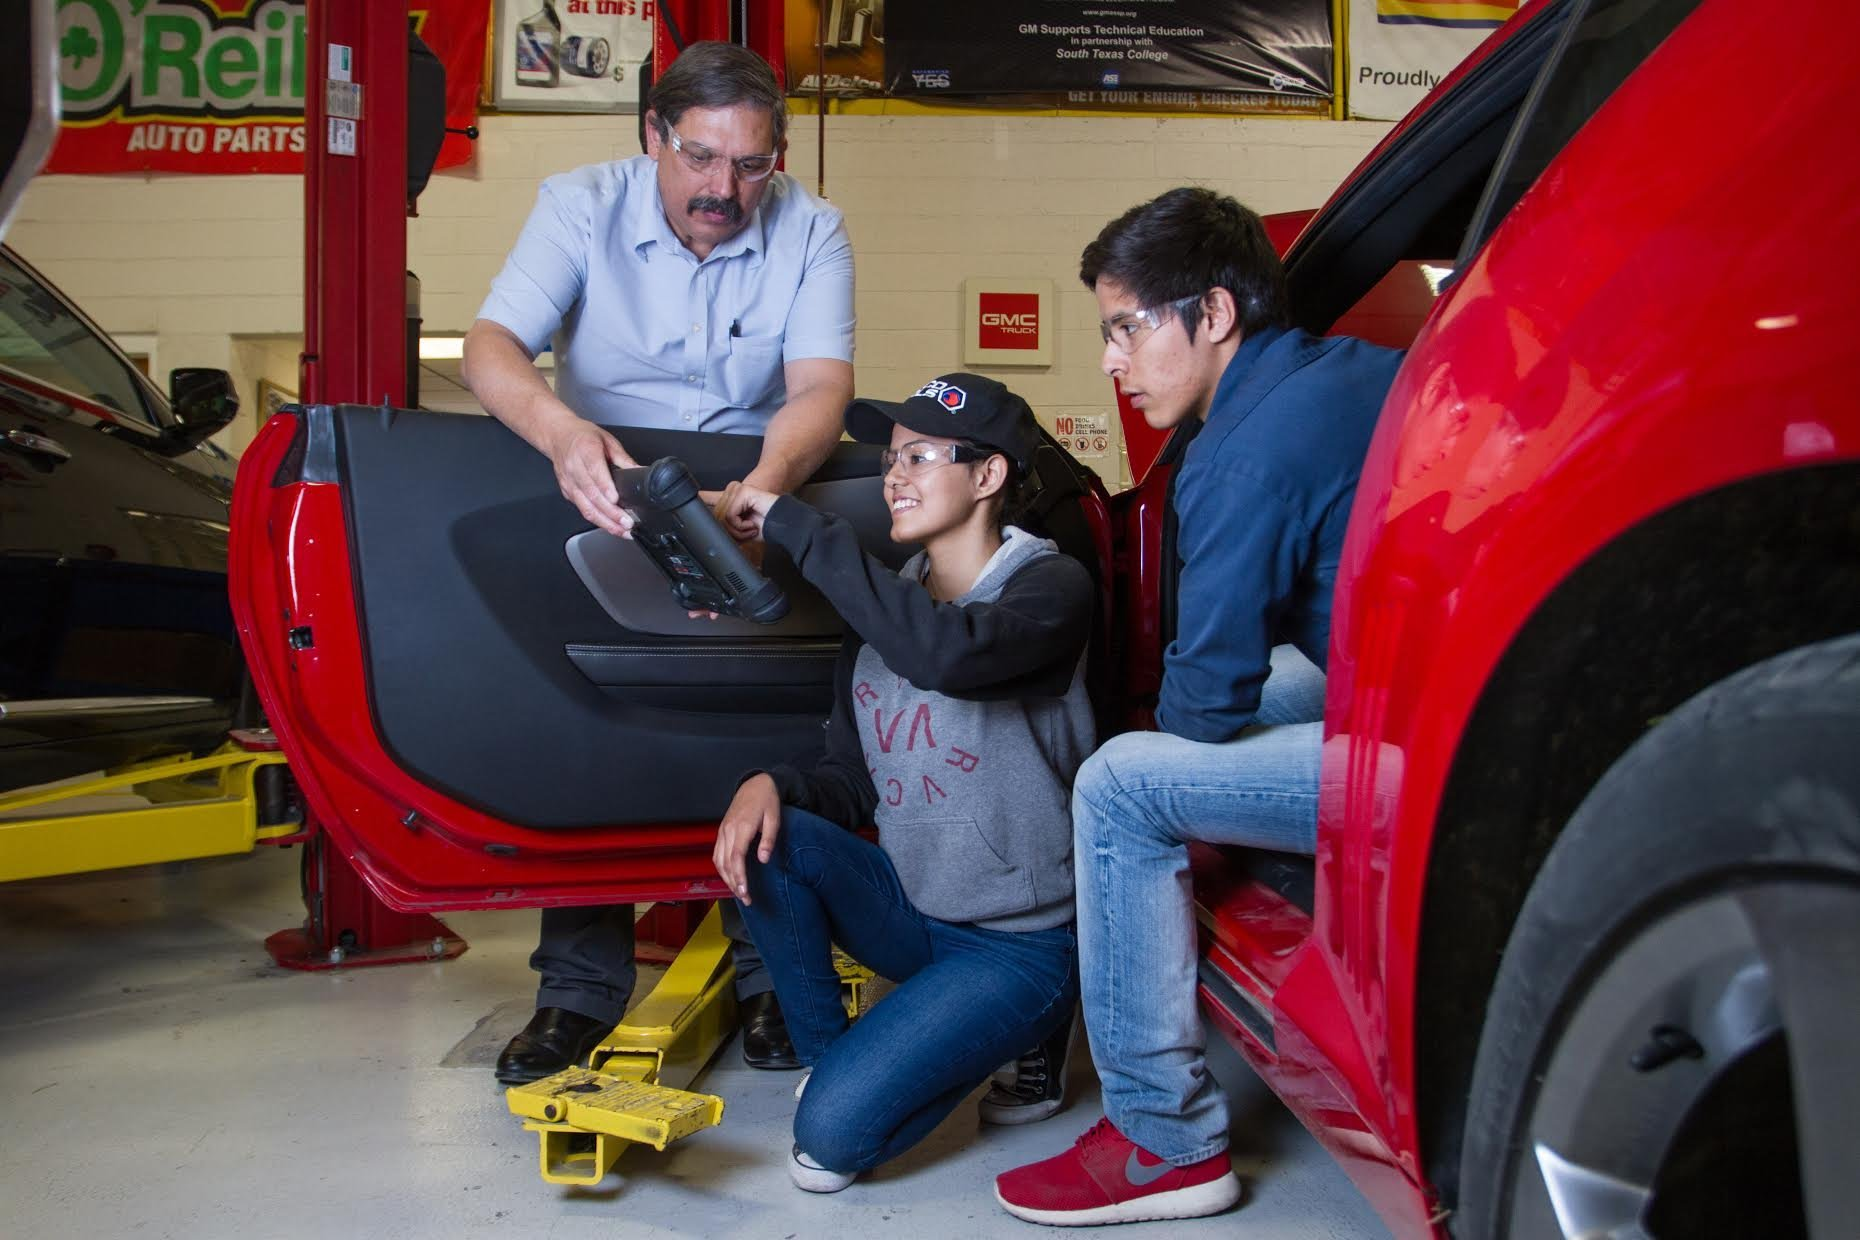 The 16 Best Automotive Technology Colleges In The U S Aceable